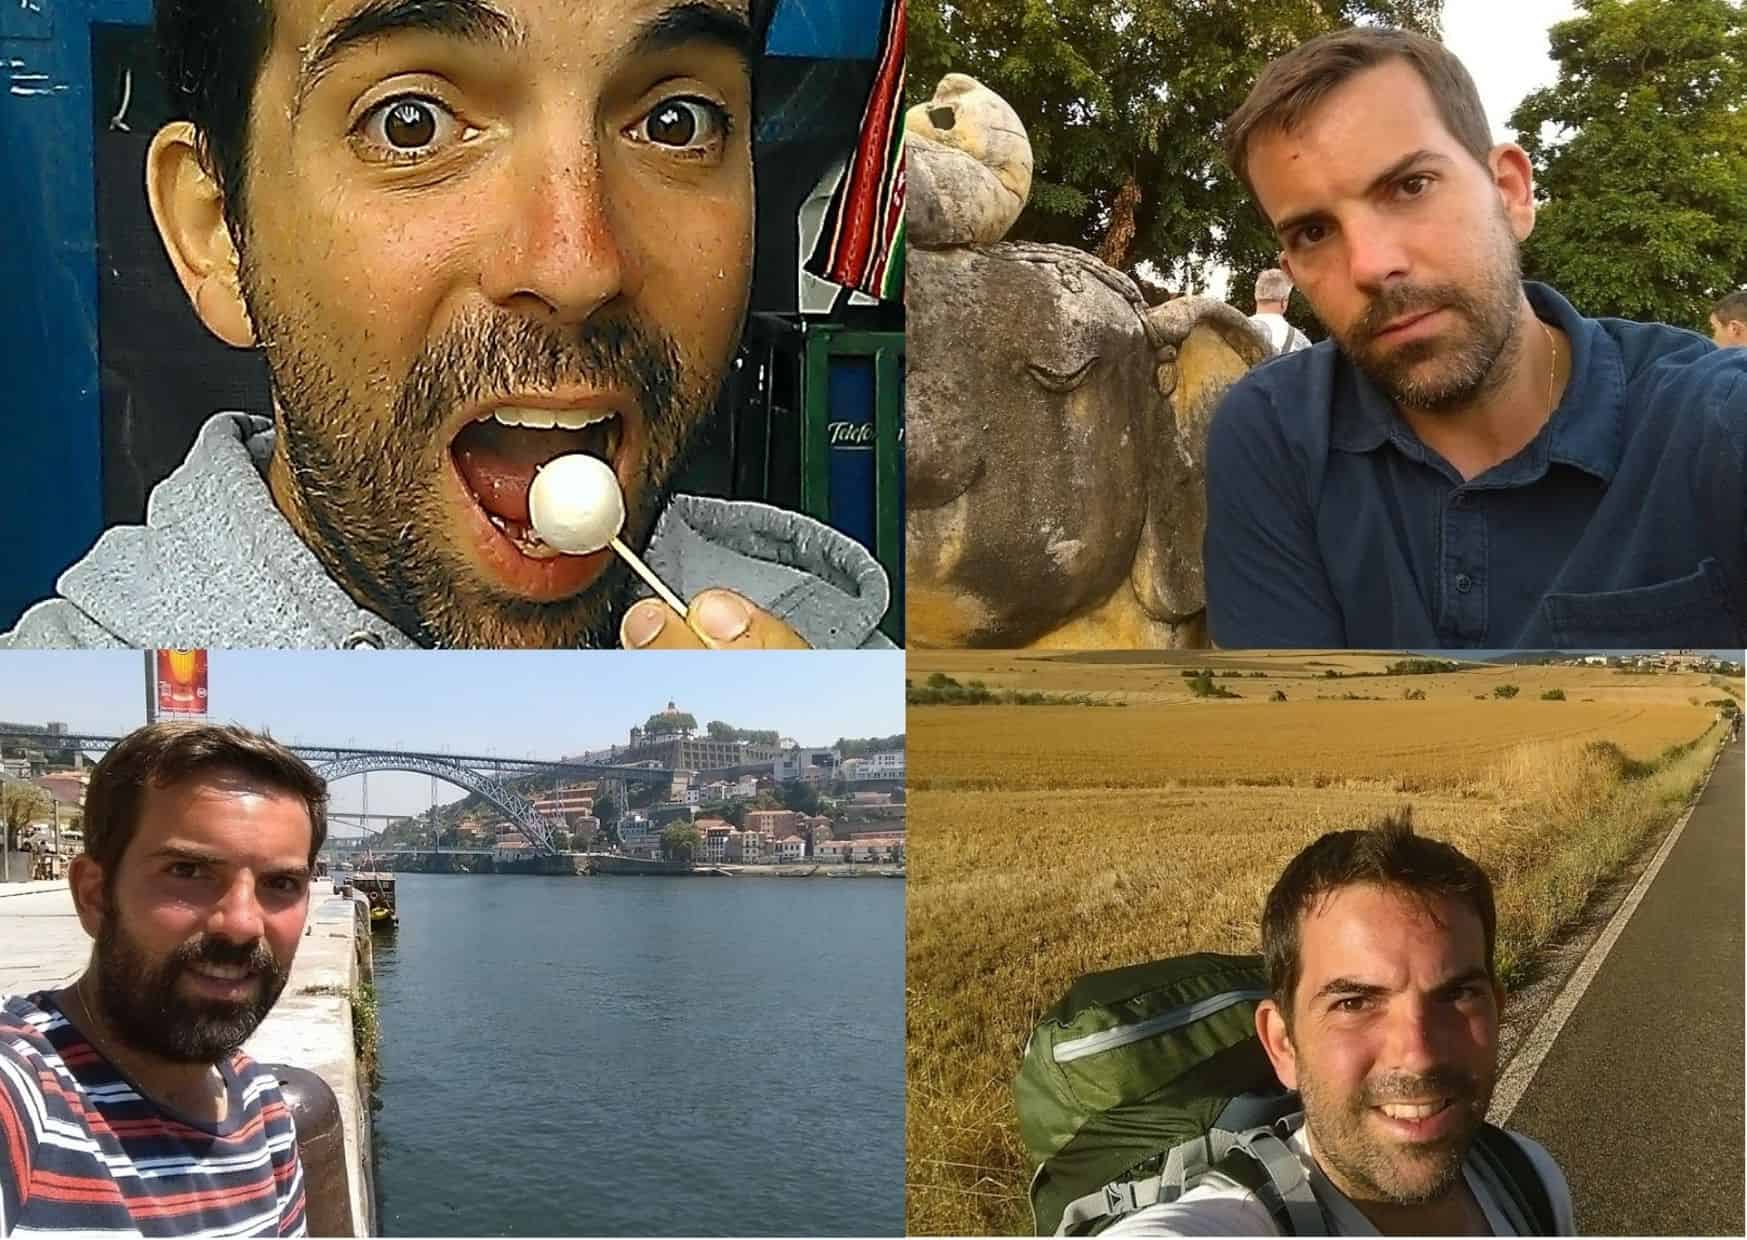 For pictures of Eric Gamble traveling around the world but failing to put on sunscreen on his face